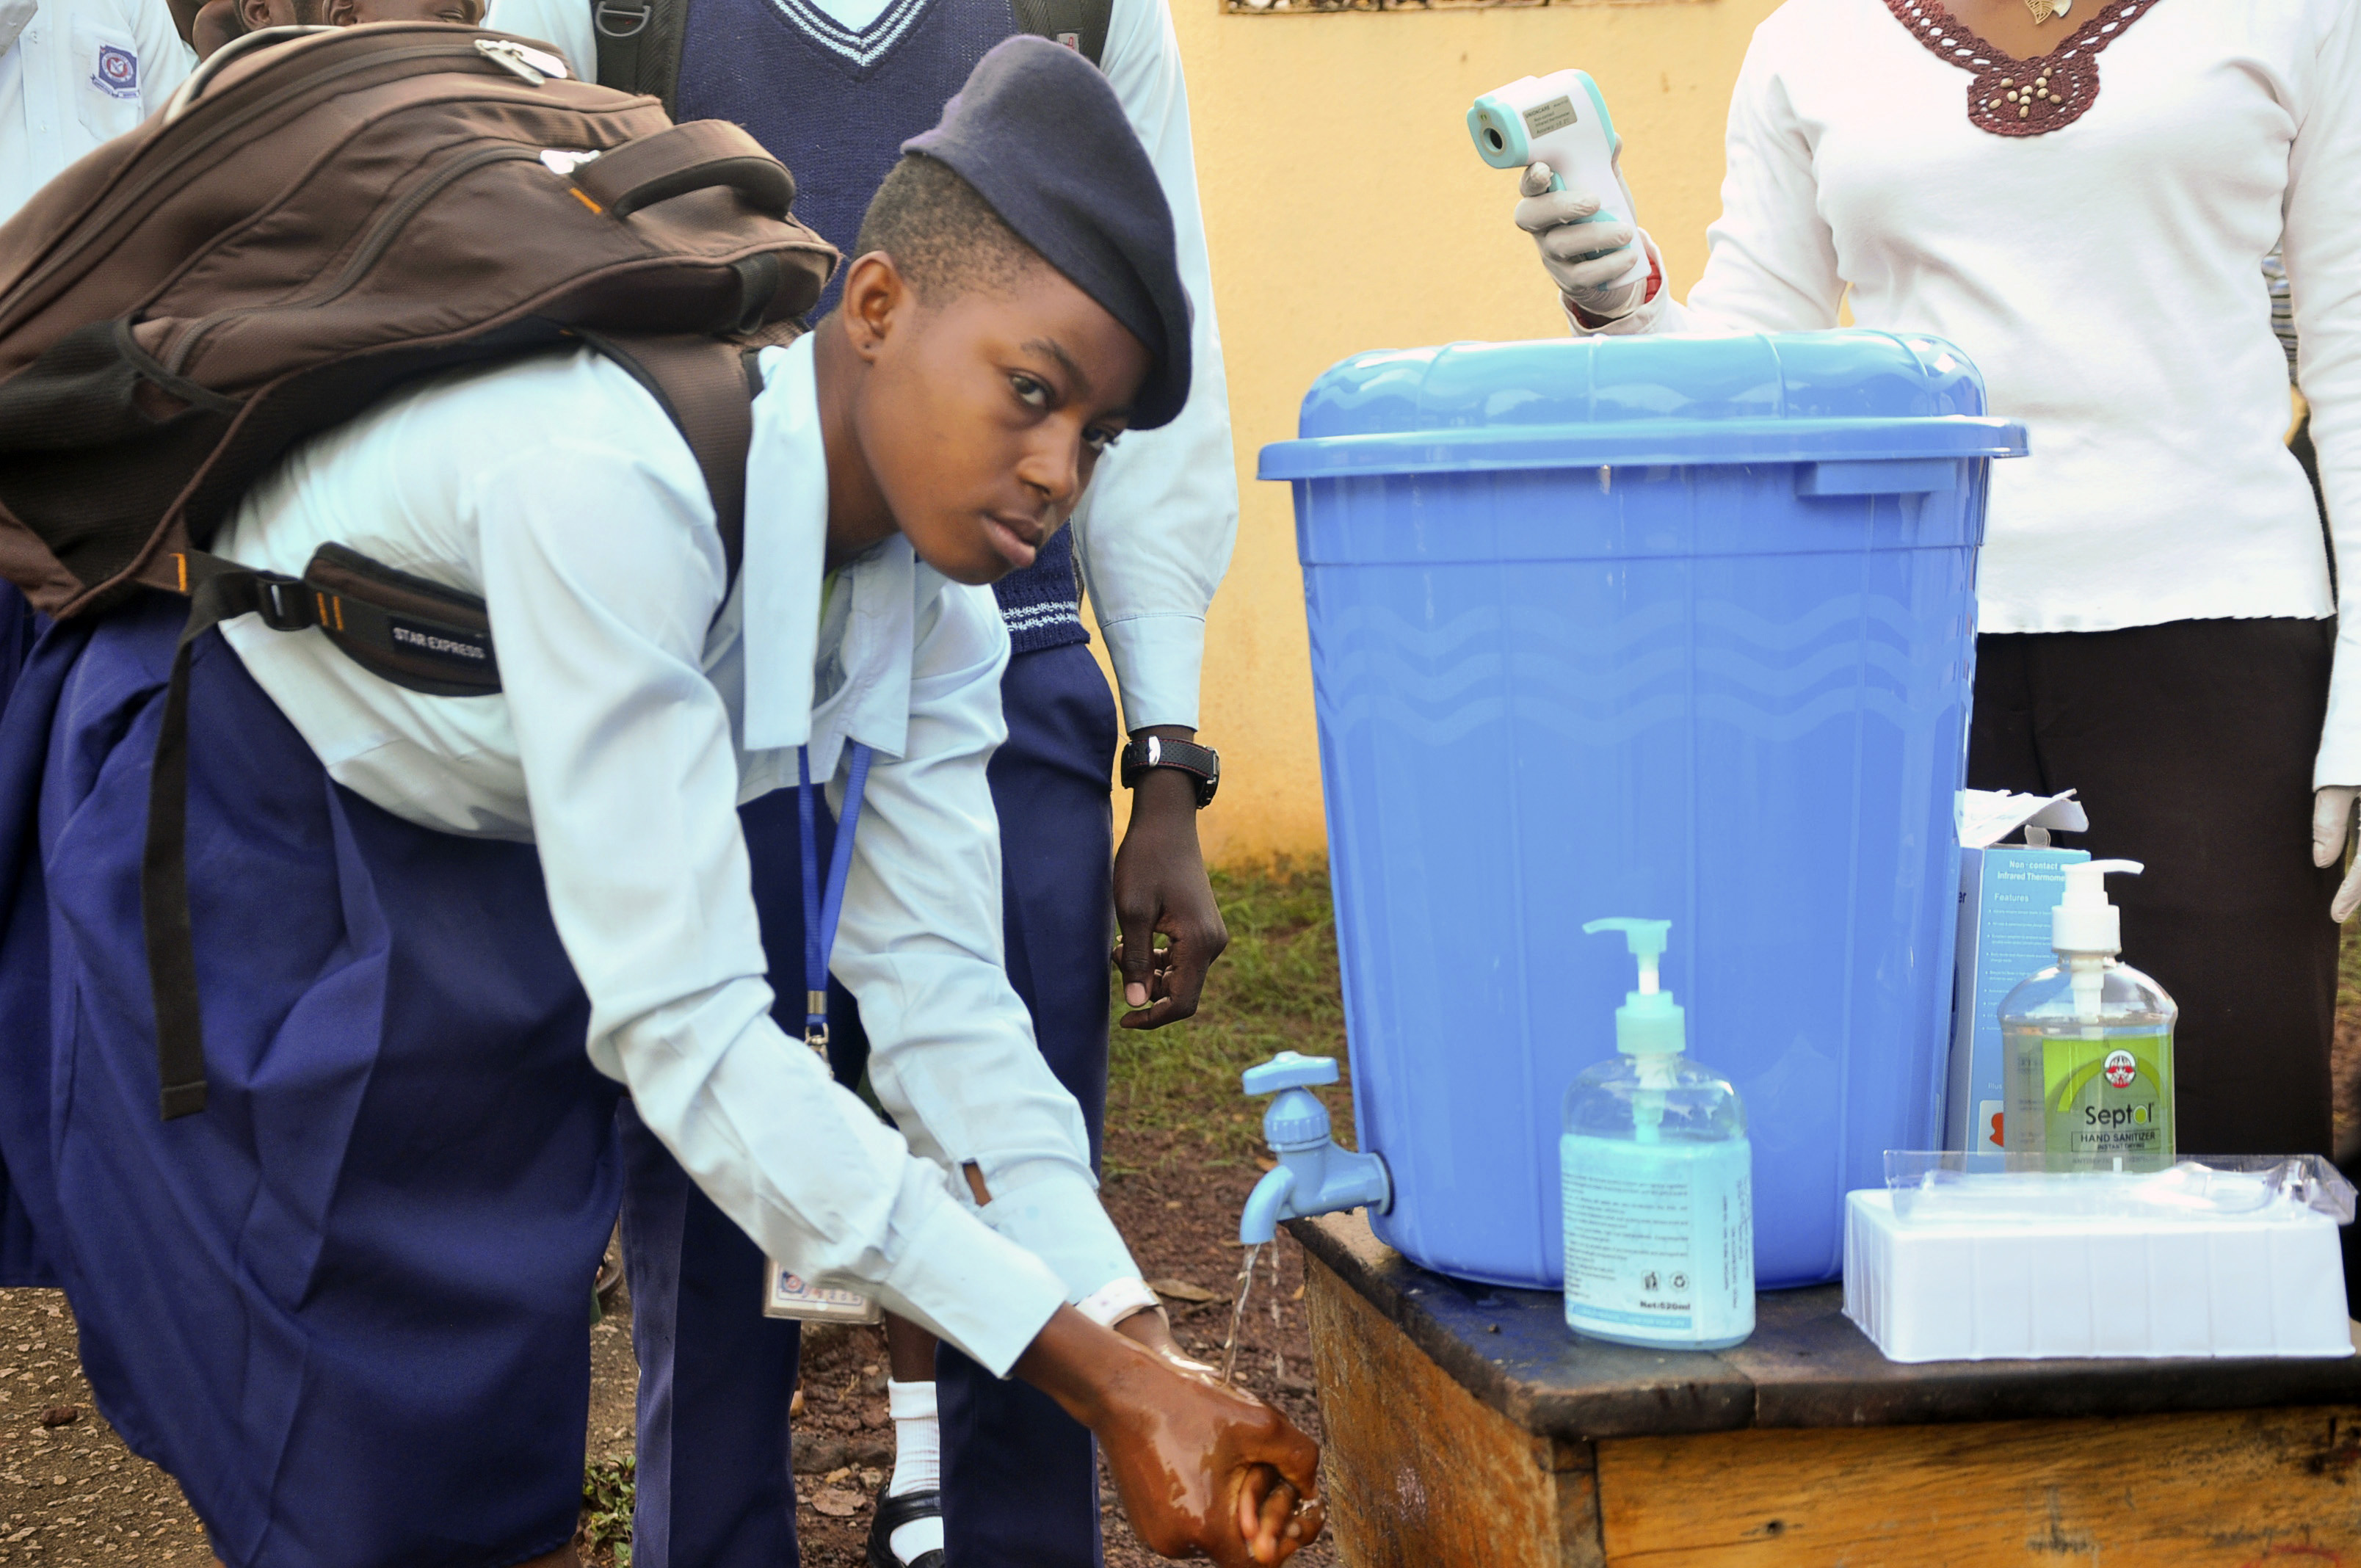 A student at Goverment Secondary School Garki washes her hands, as school resumed in Abuja, Nigeria, in late September.